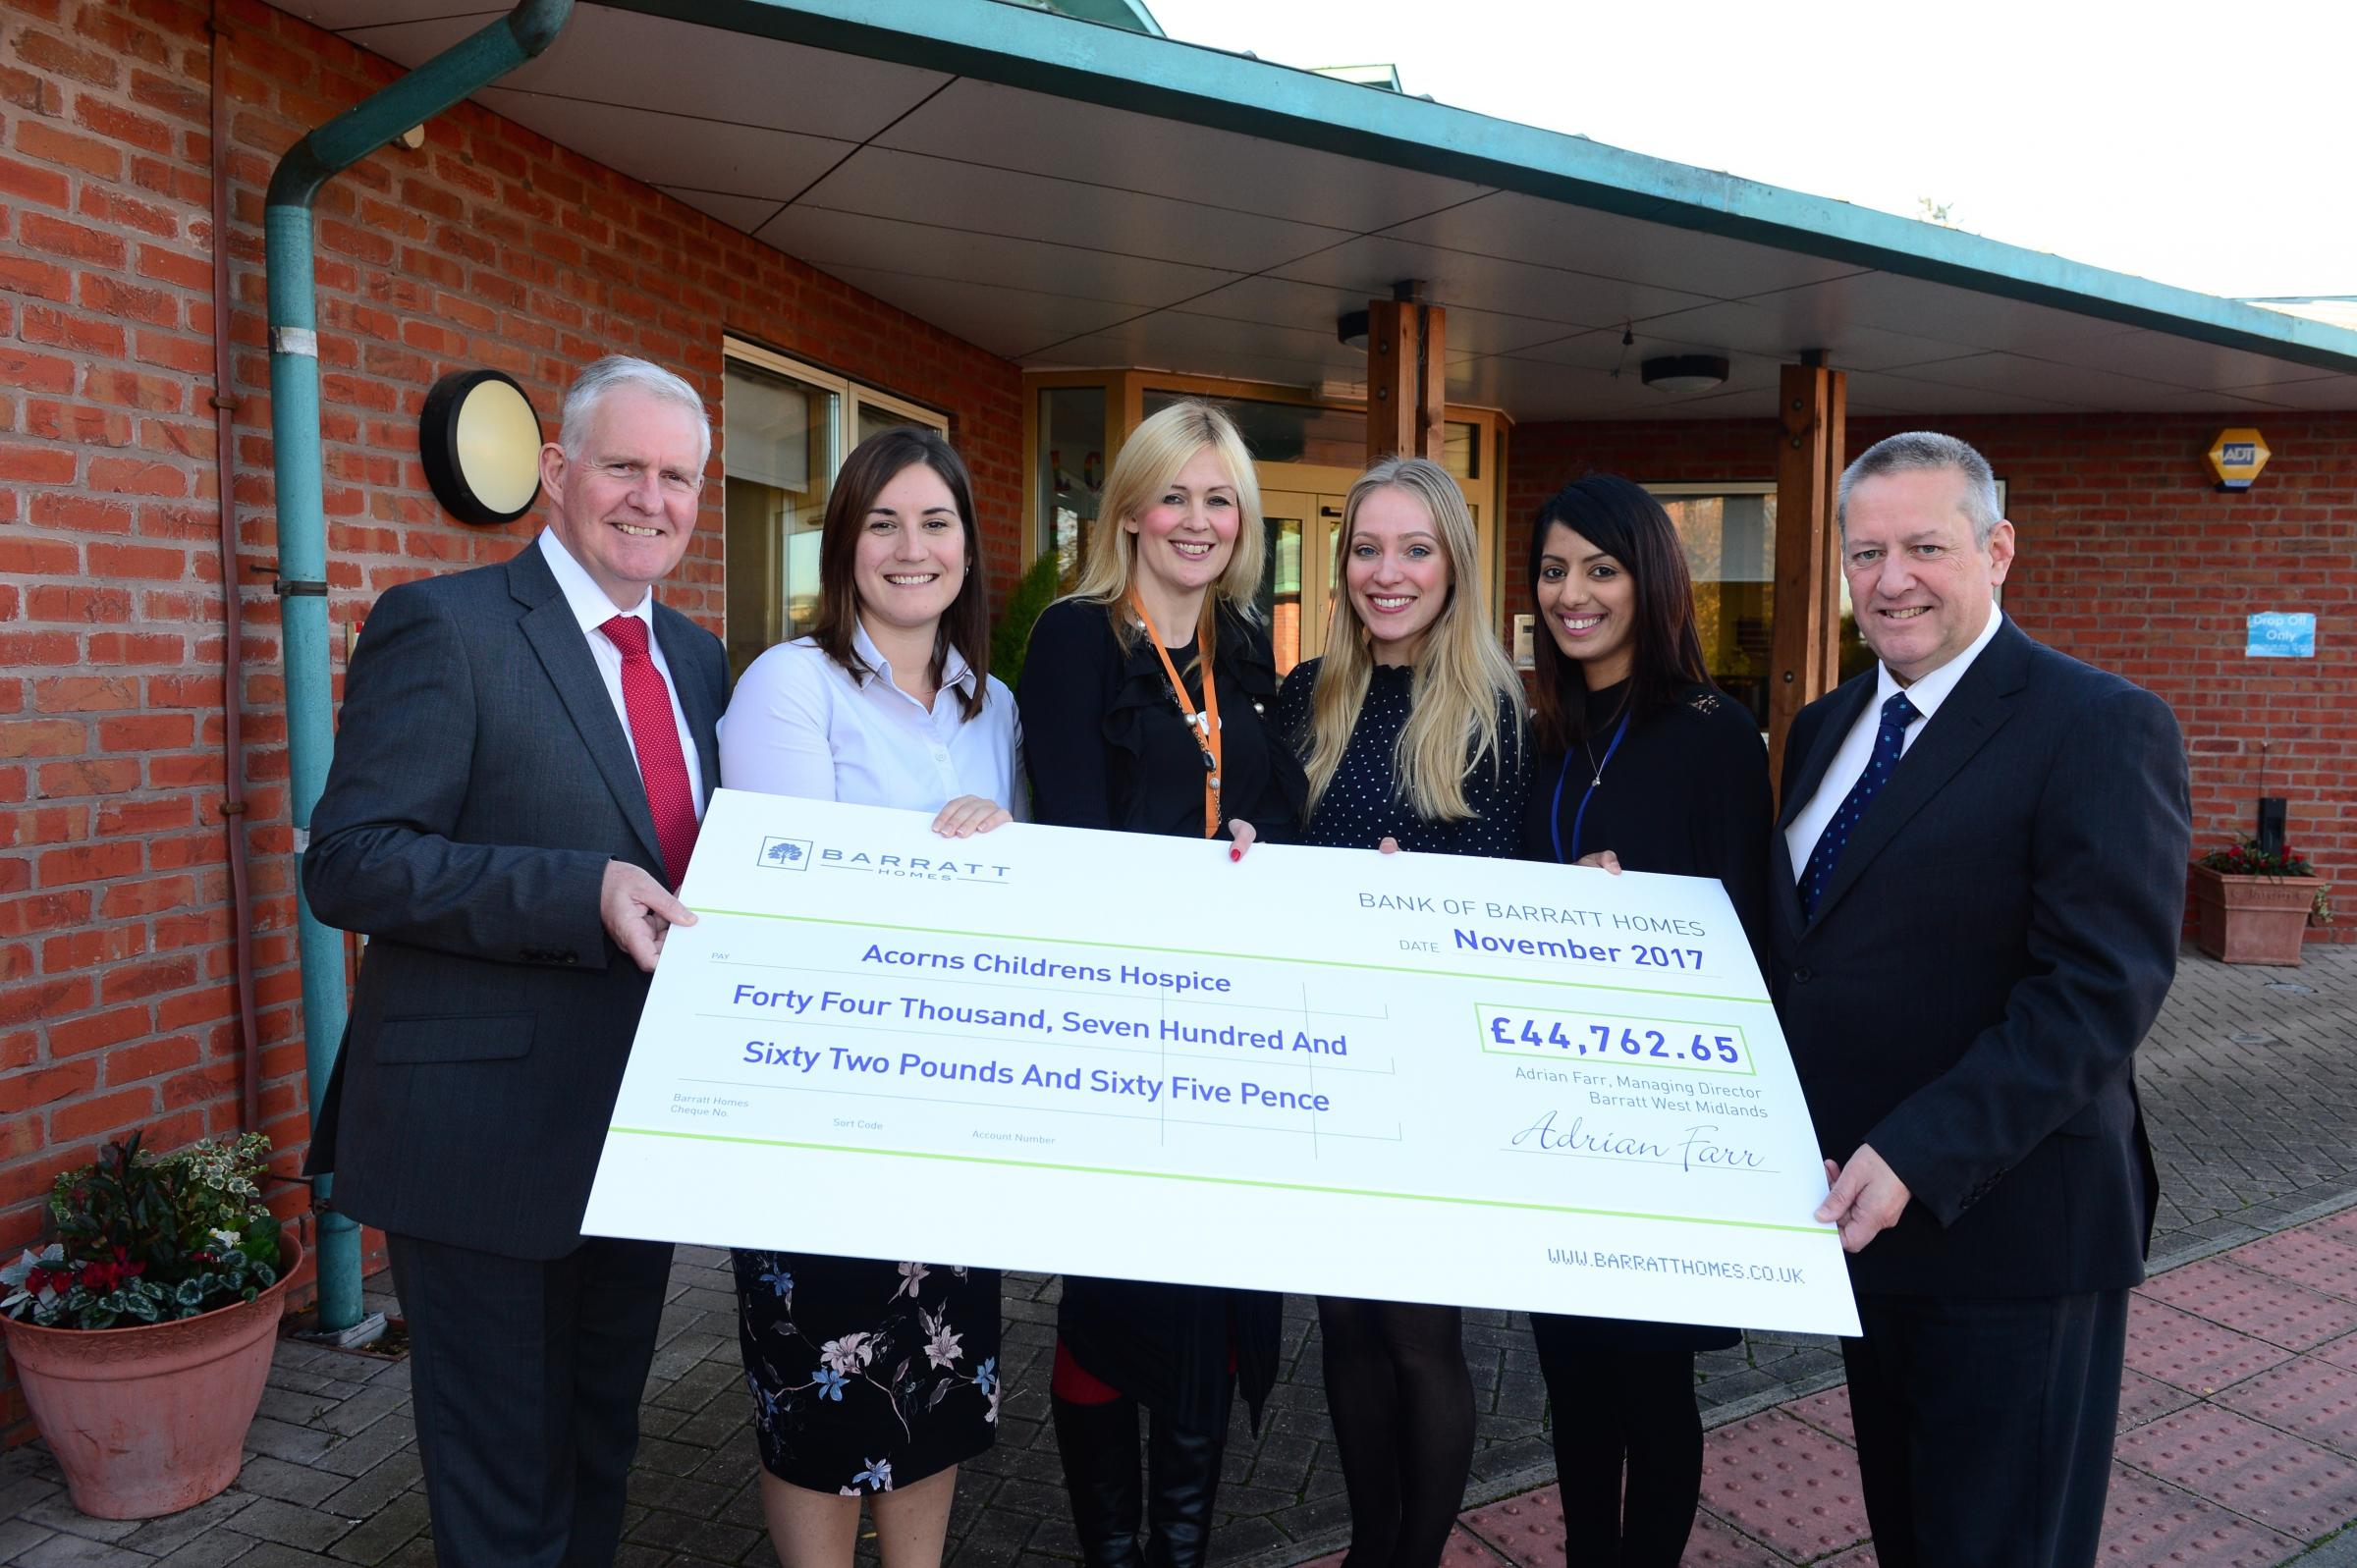 DONATION: Barratt Homes staff awarding the cheque to Acorns Children's Hospice